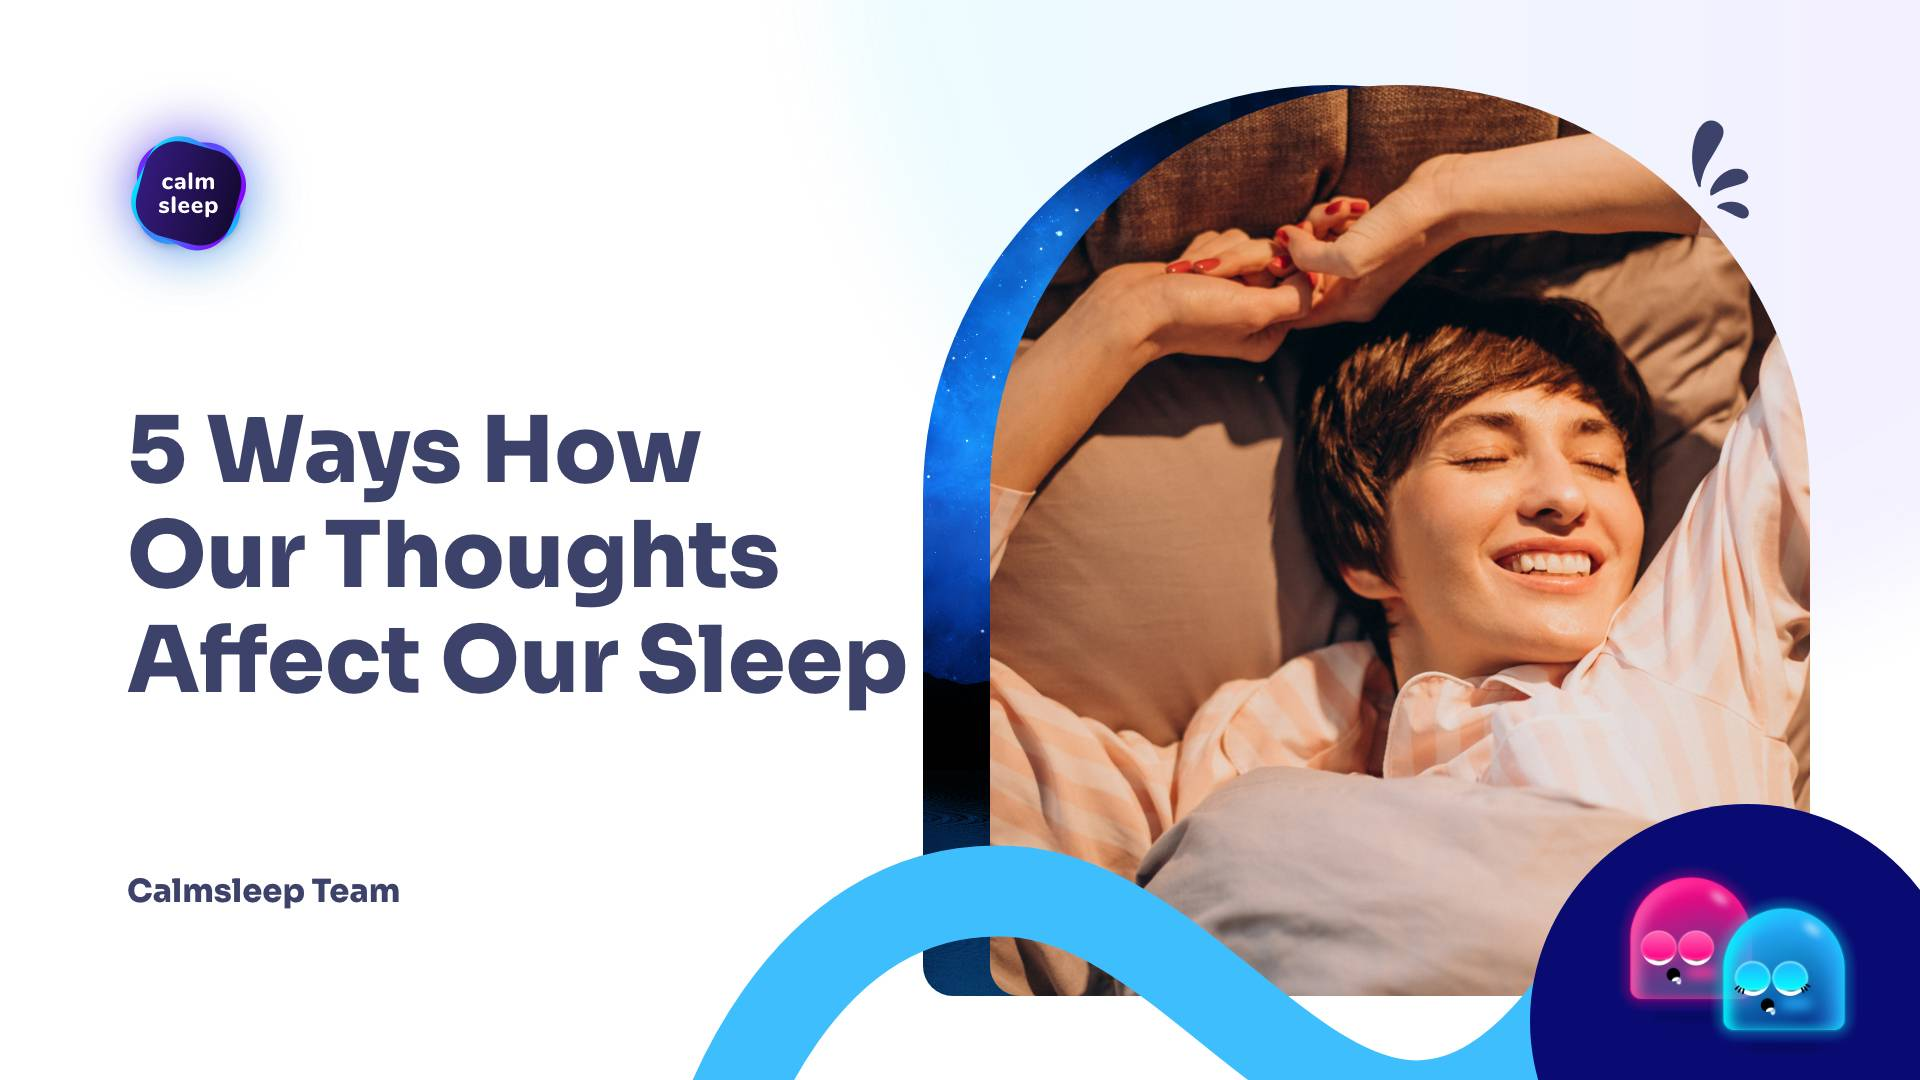 5 Ways How Our Thoughts Affect Our Sleep